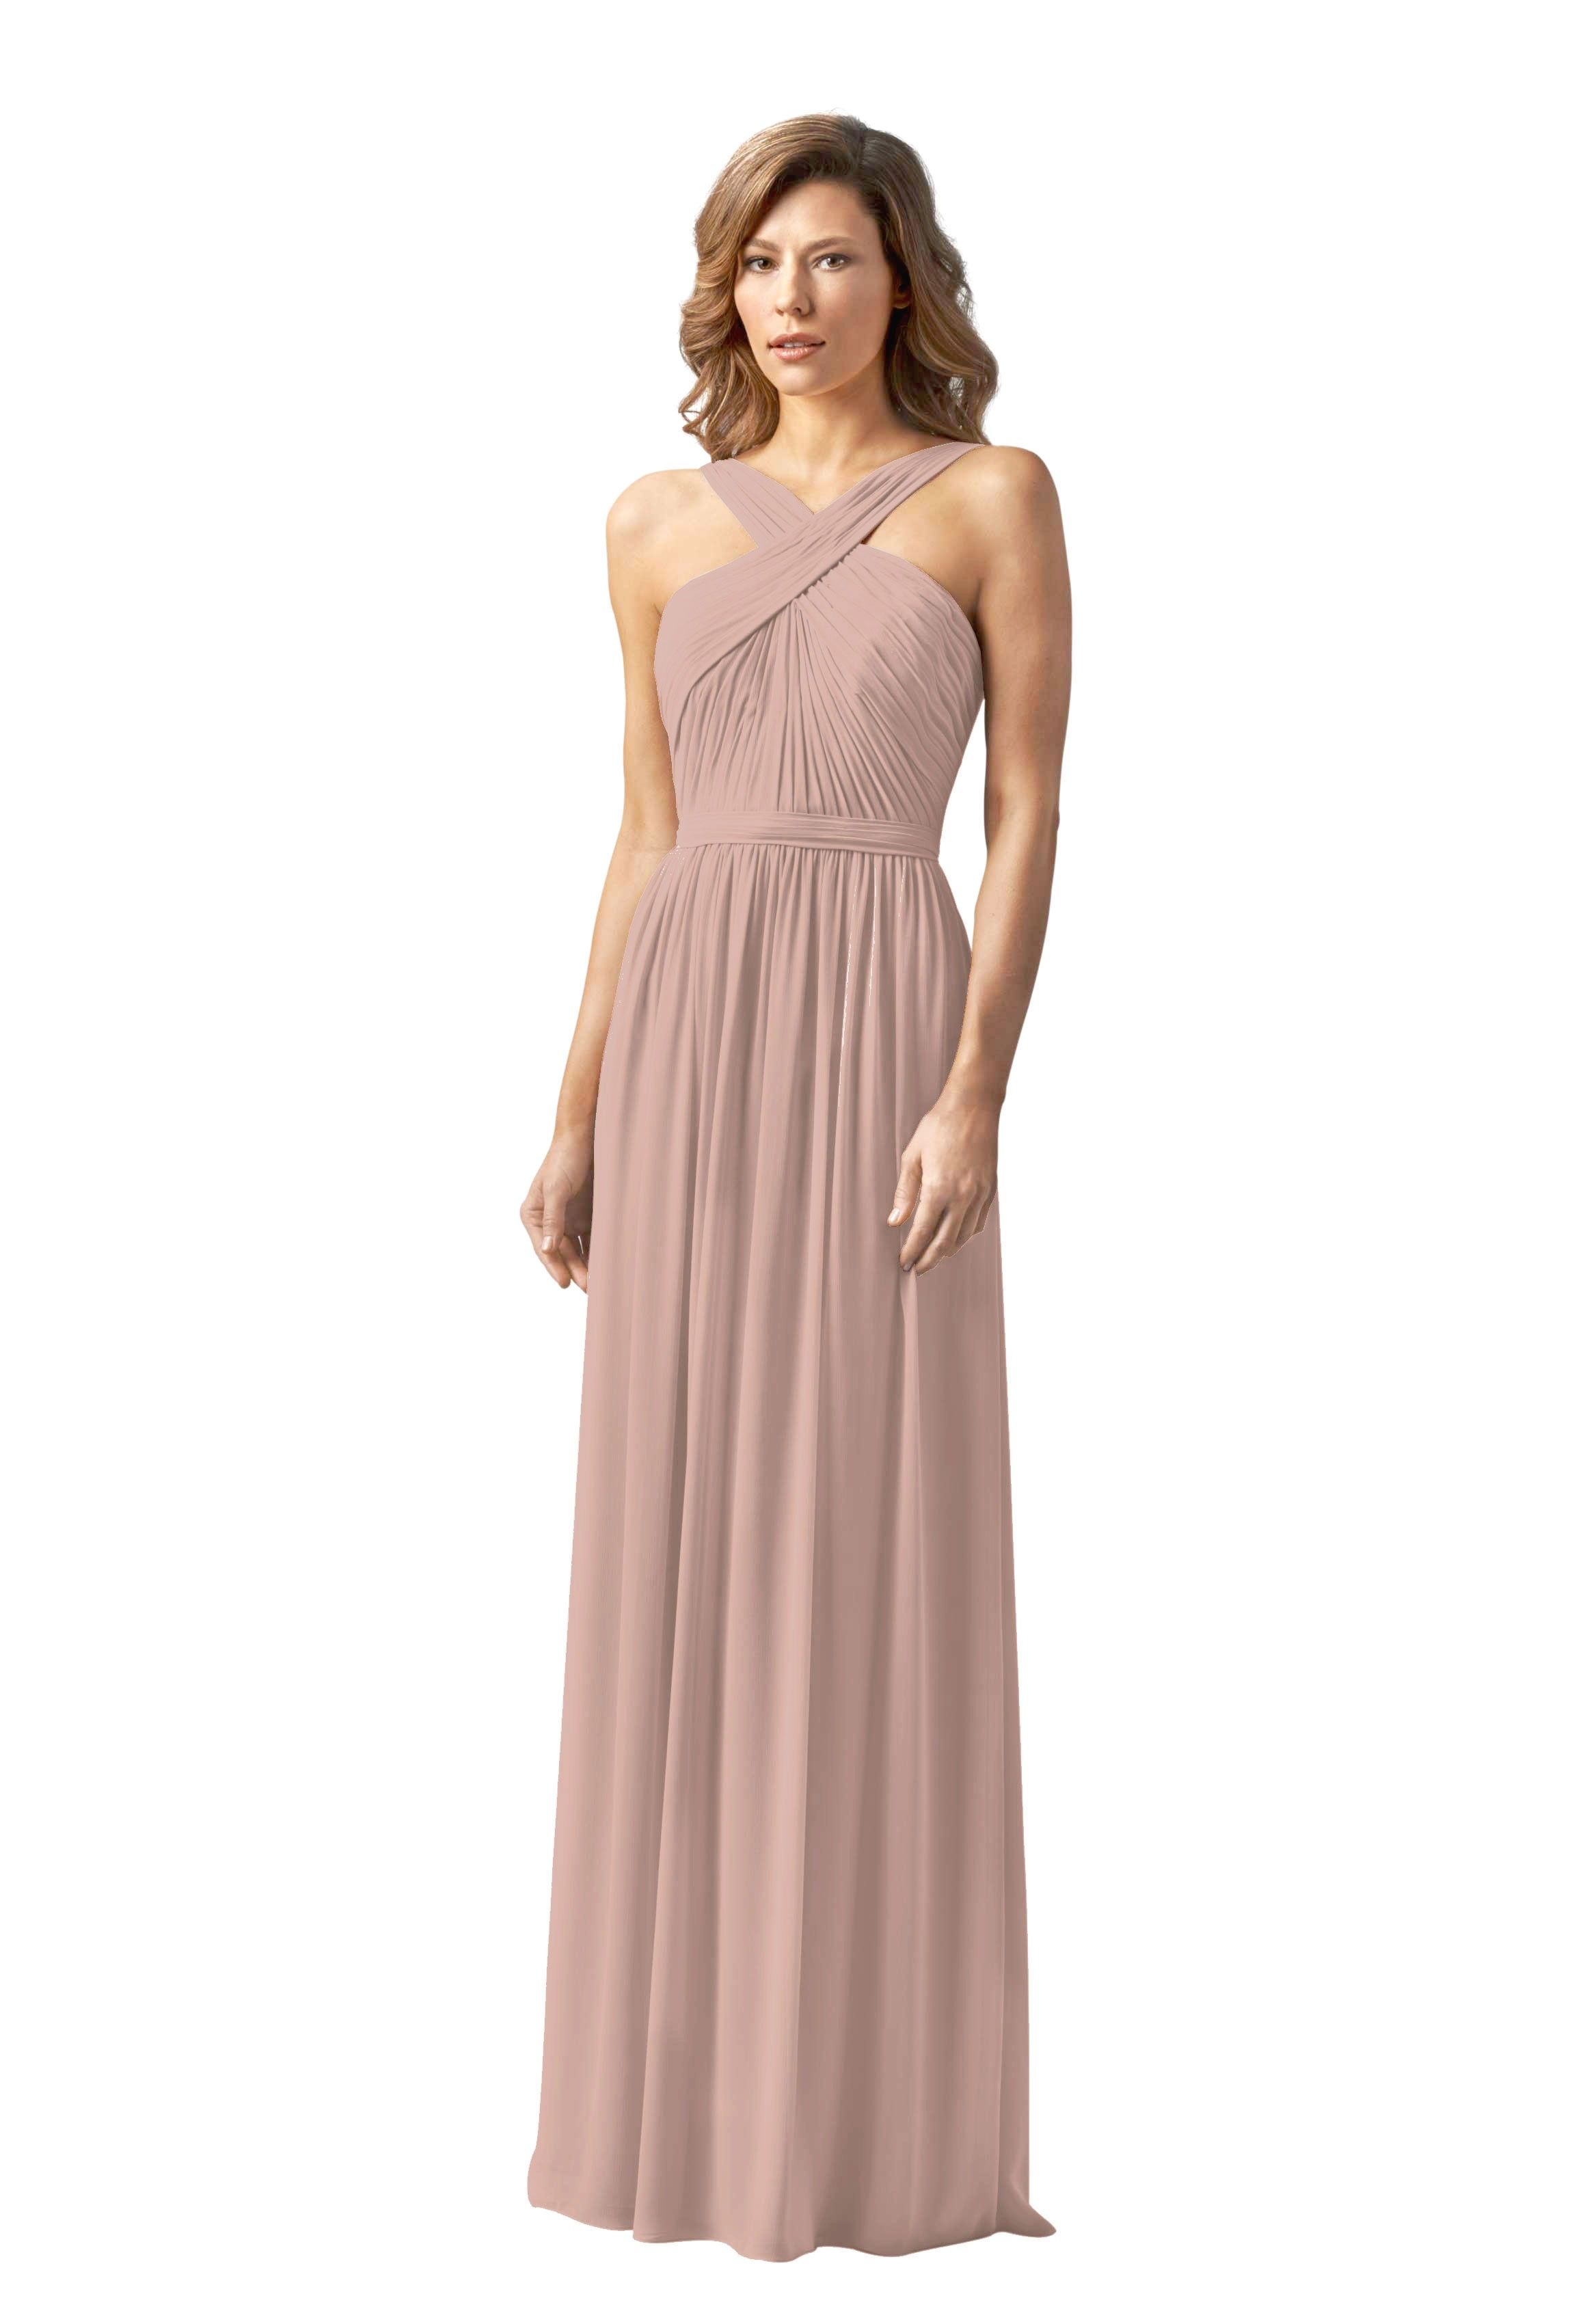 Watters Micah | Chiffon gown, Gowns and Wedding